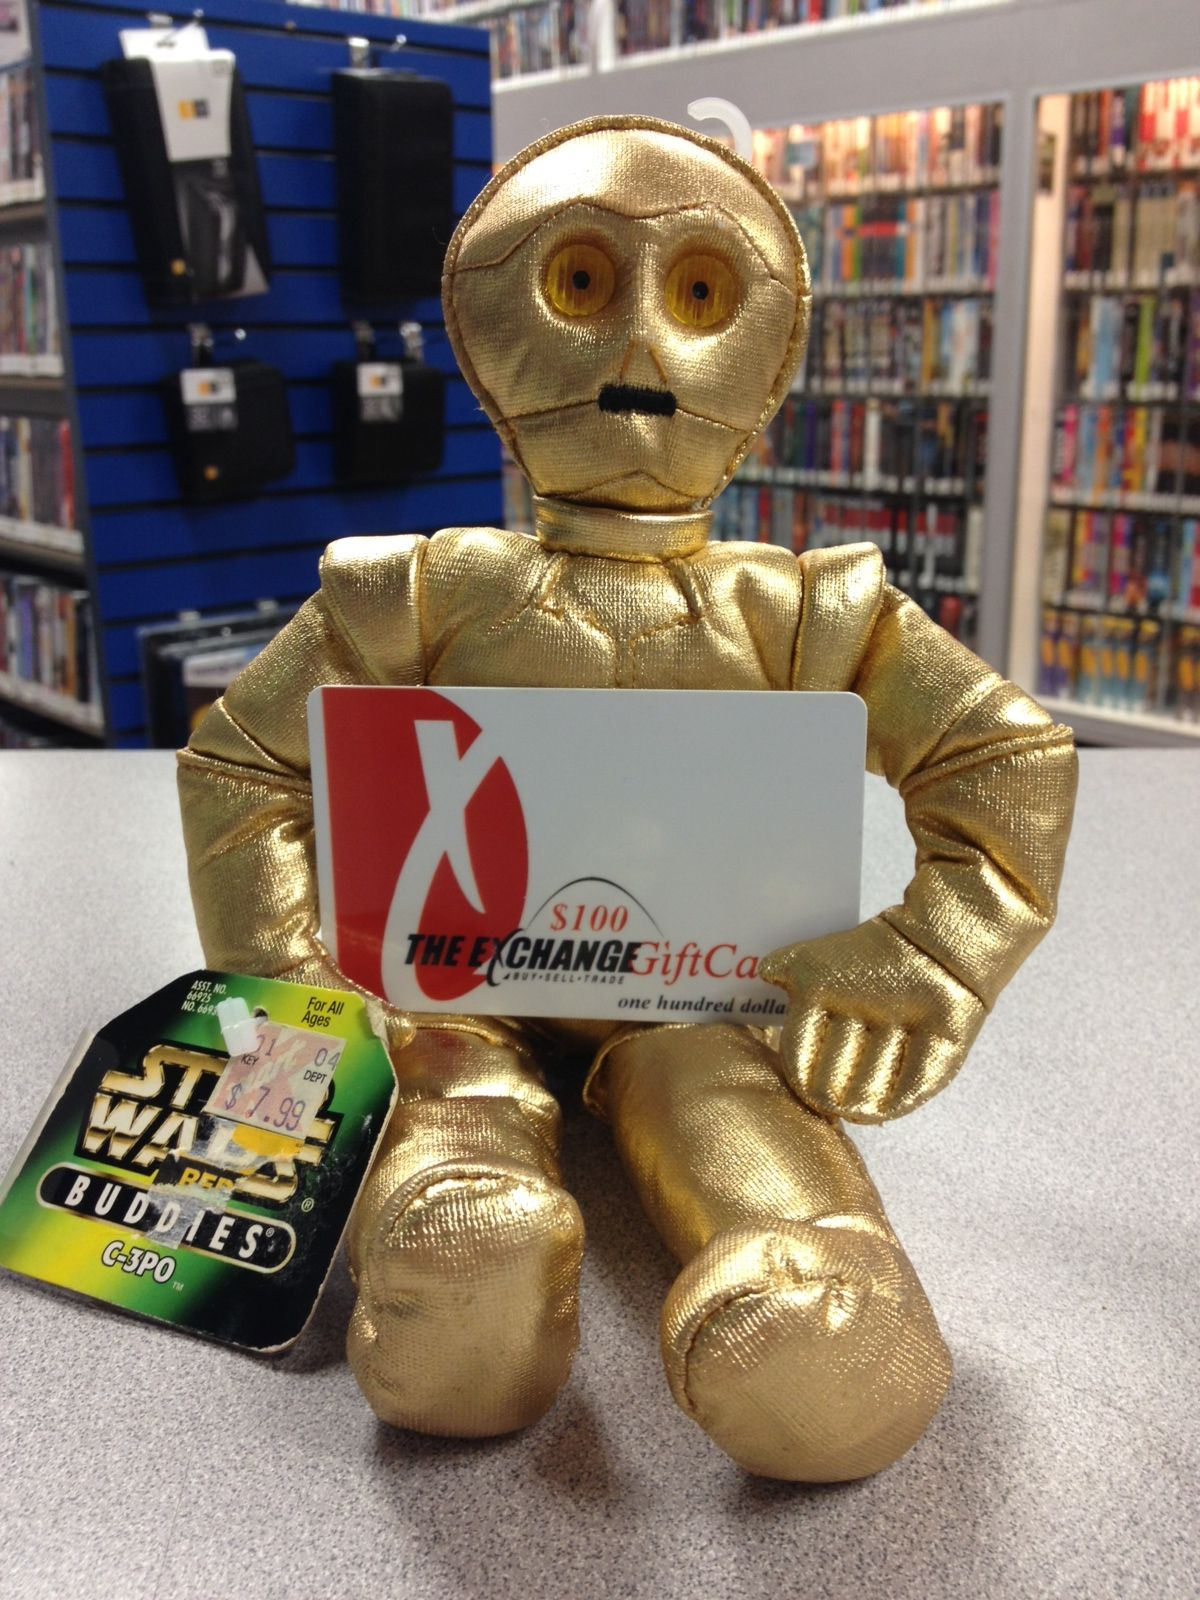 C3PO and a Gift Card...